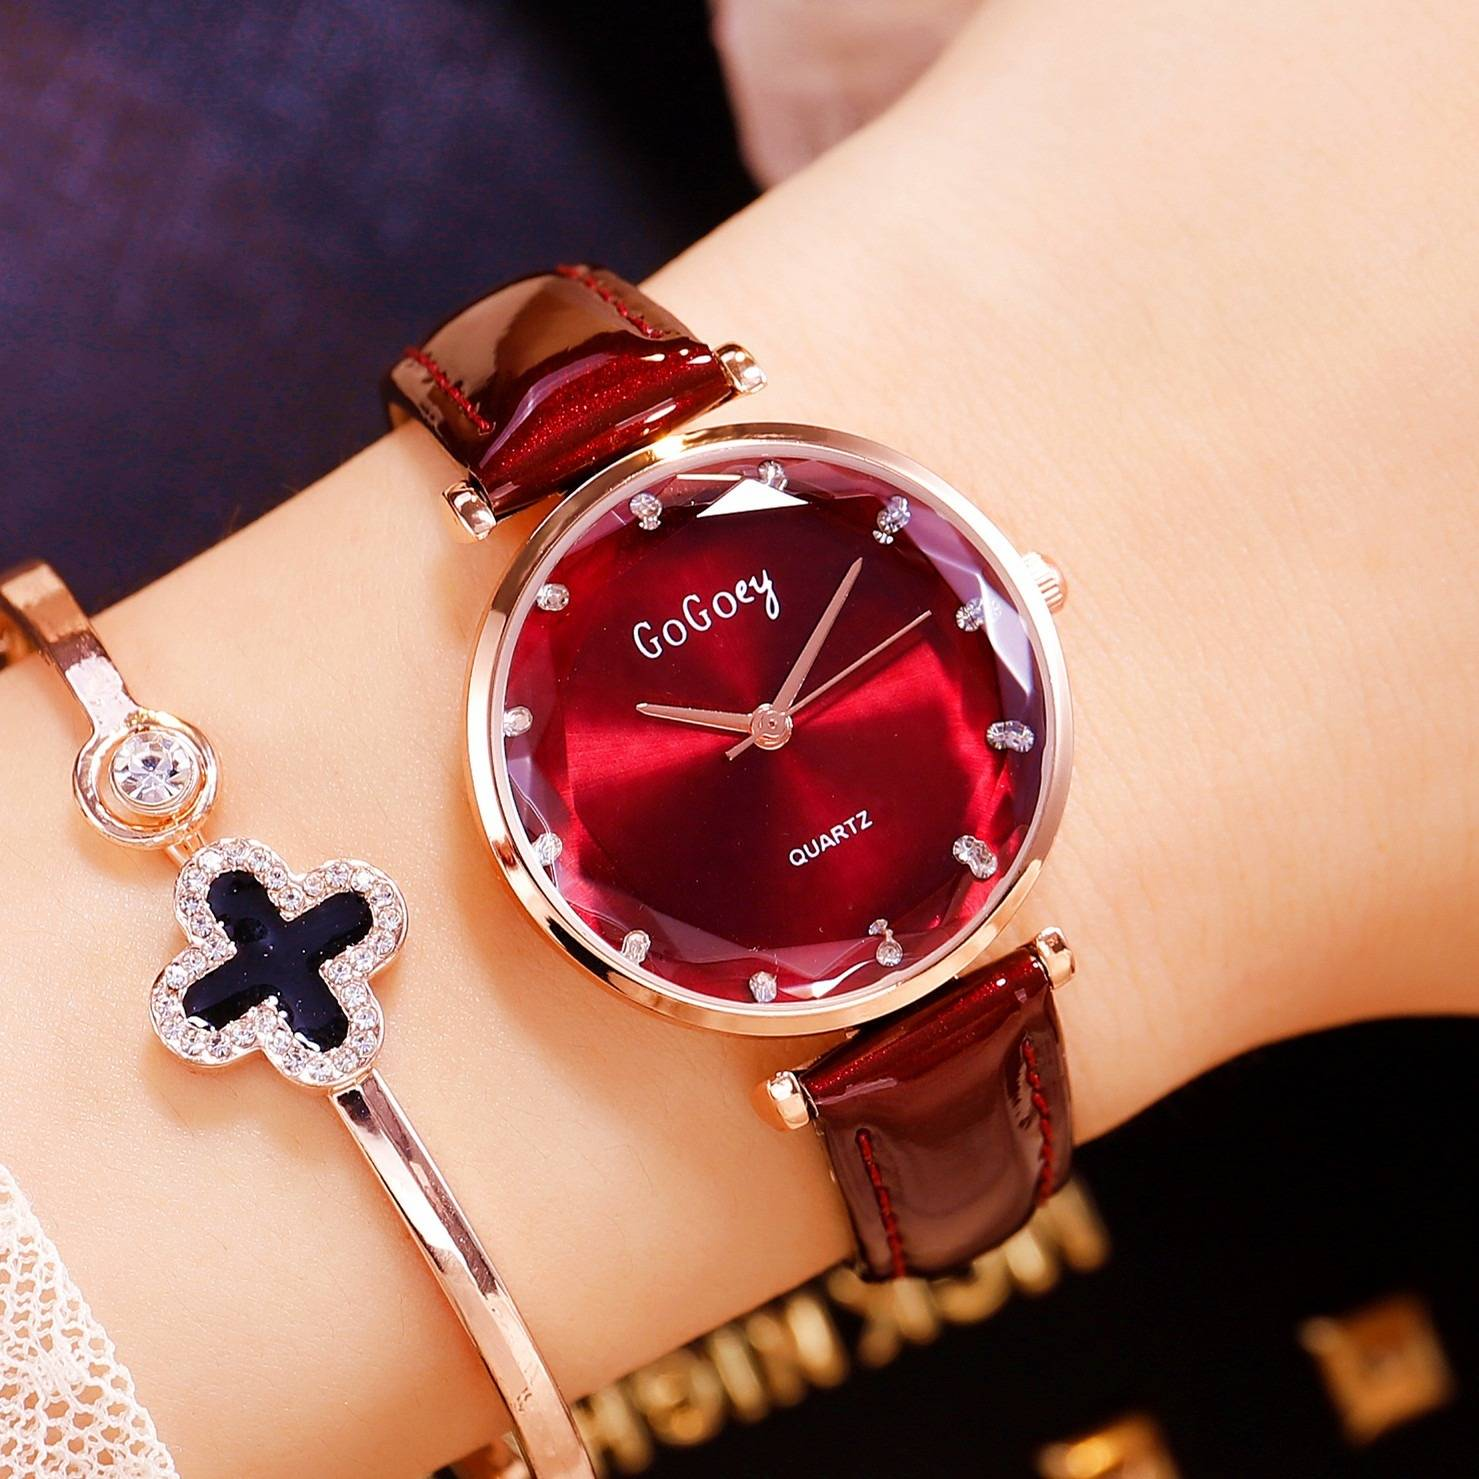 Gogoey Casual Women Watches Womens Leather Strap Quartz Watch Ladies Reloj Mujer dames horloges montre femme